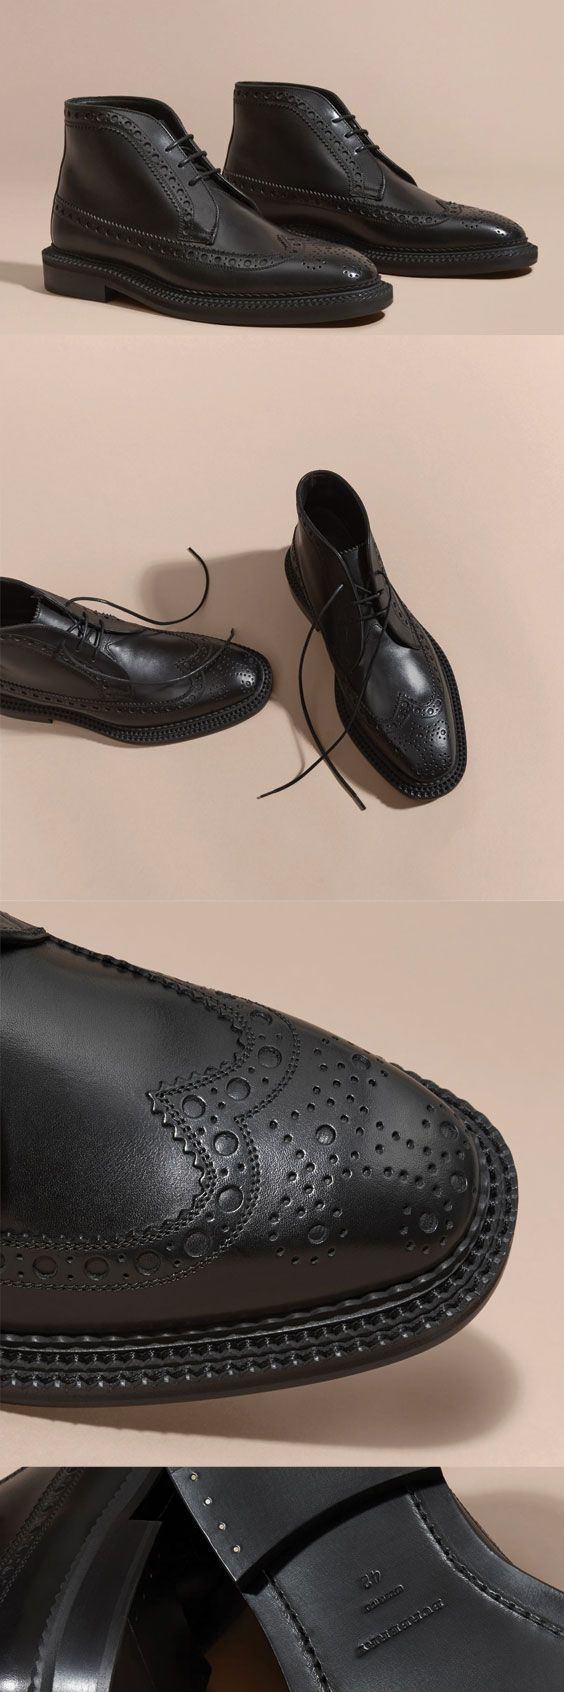 Burberry Leather Brogue Boots $825 #ads Men shoes boots